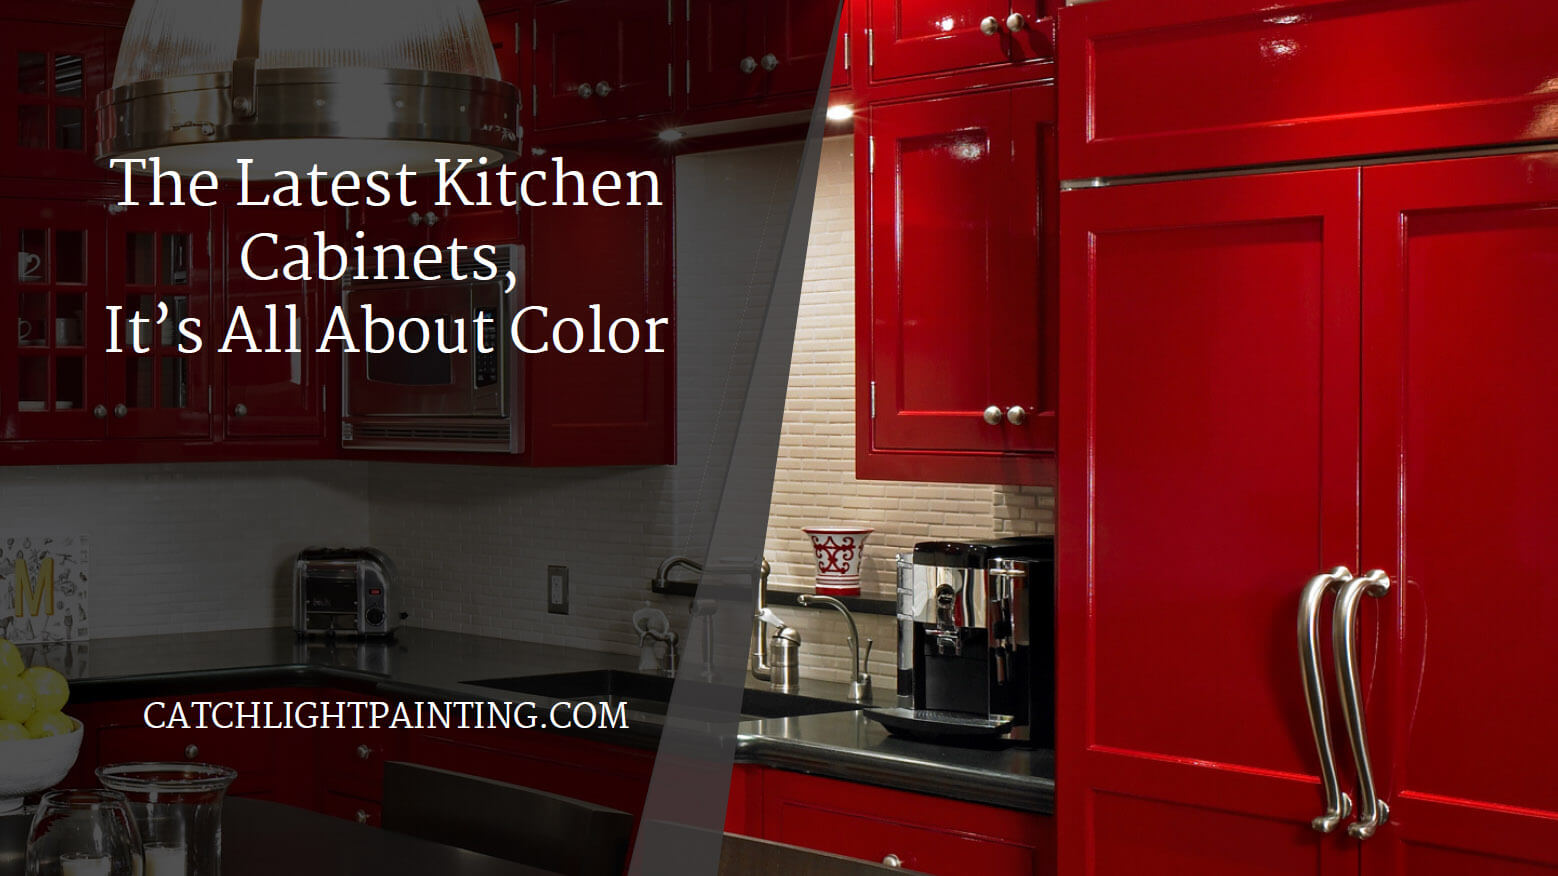 The Latest in Kitchen Cabinets, It's All About Color